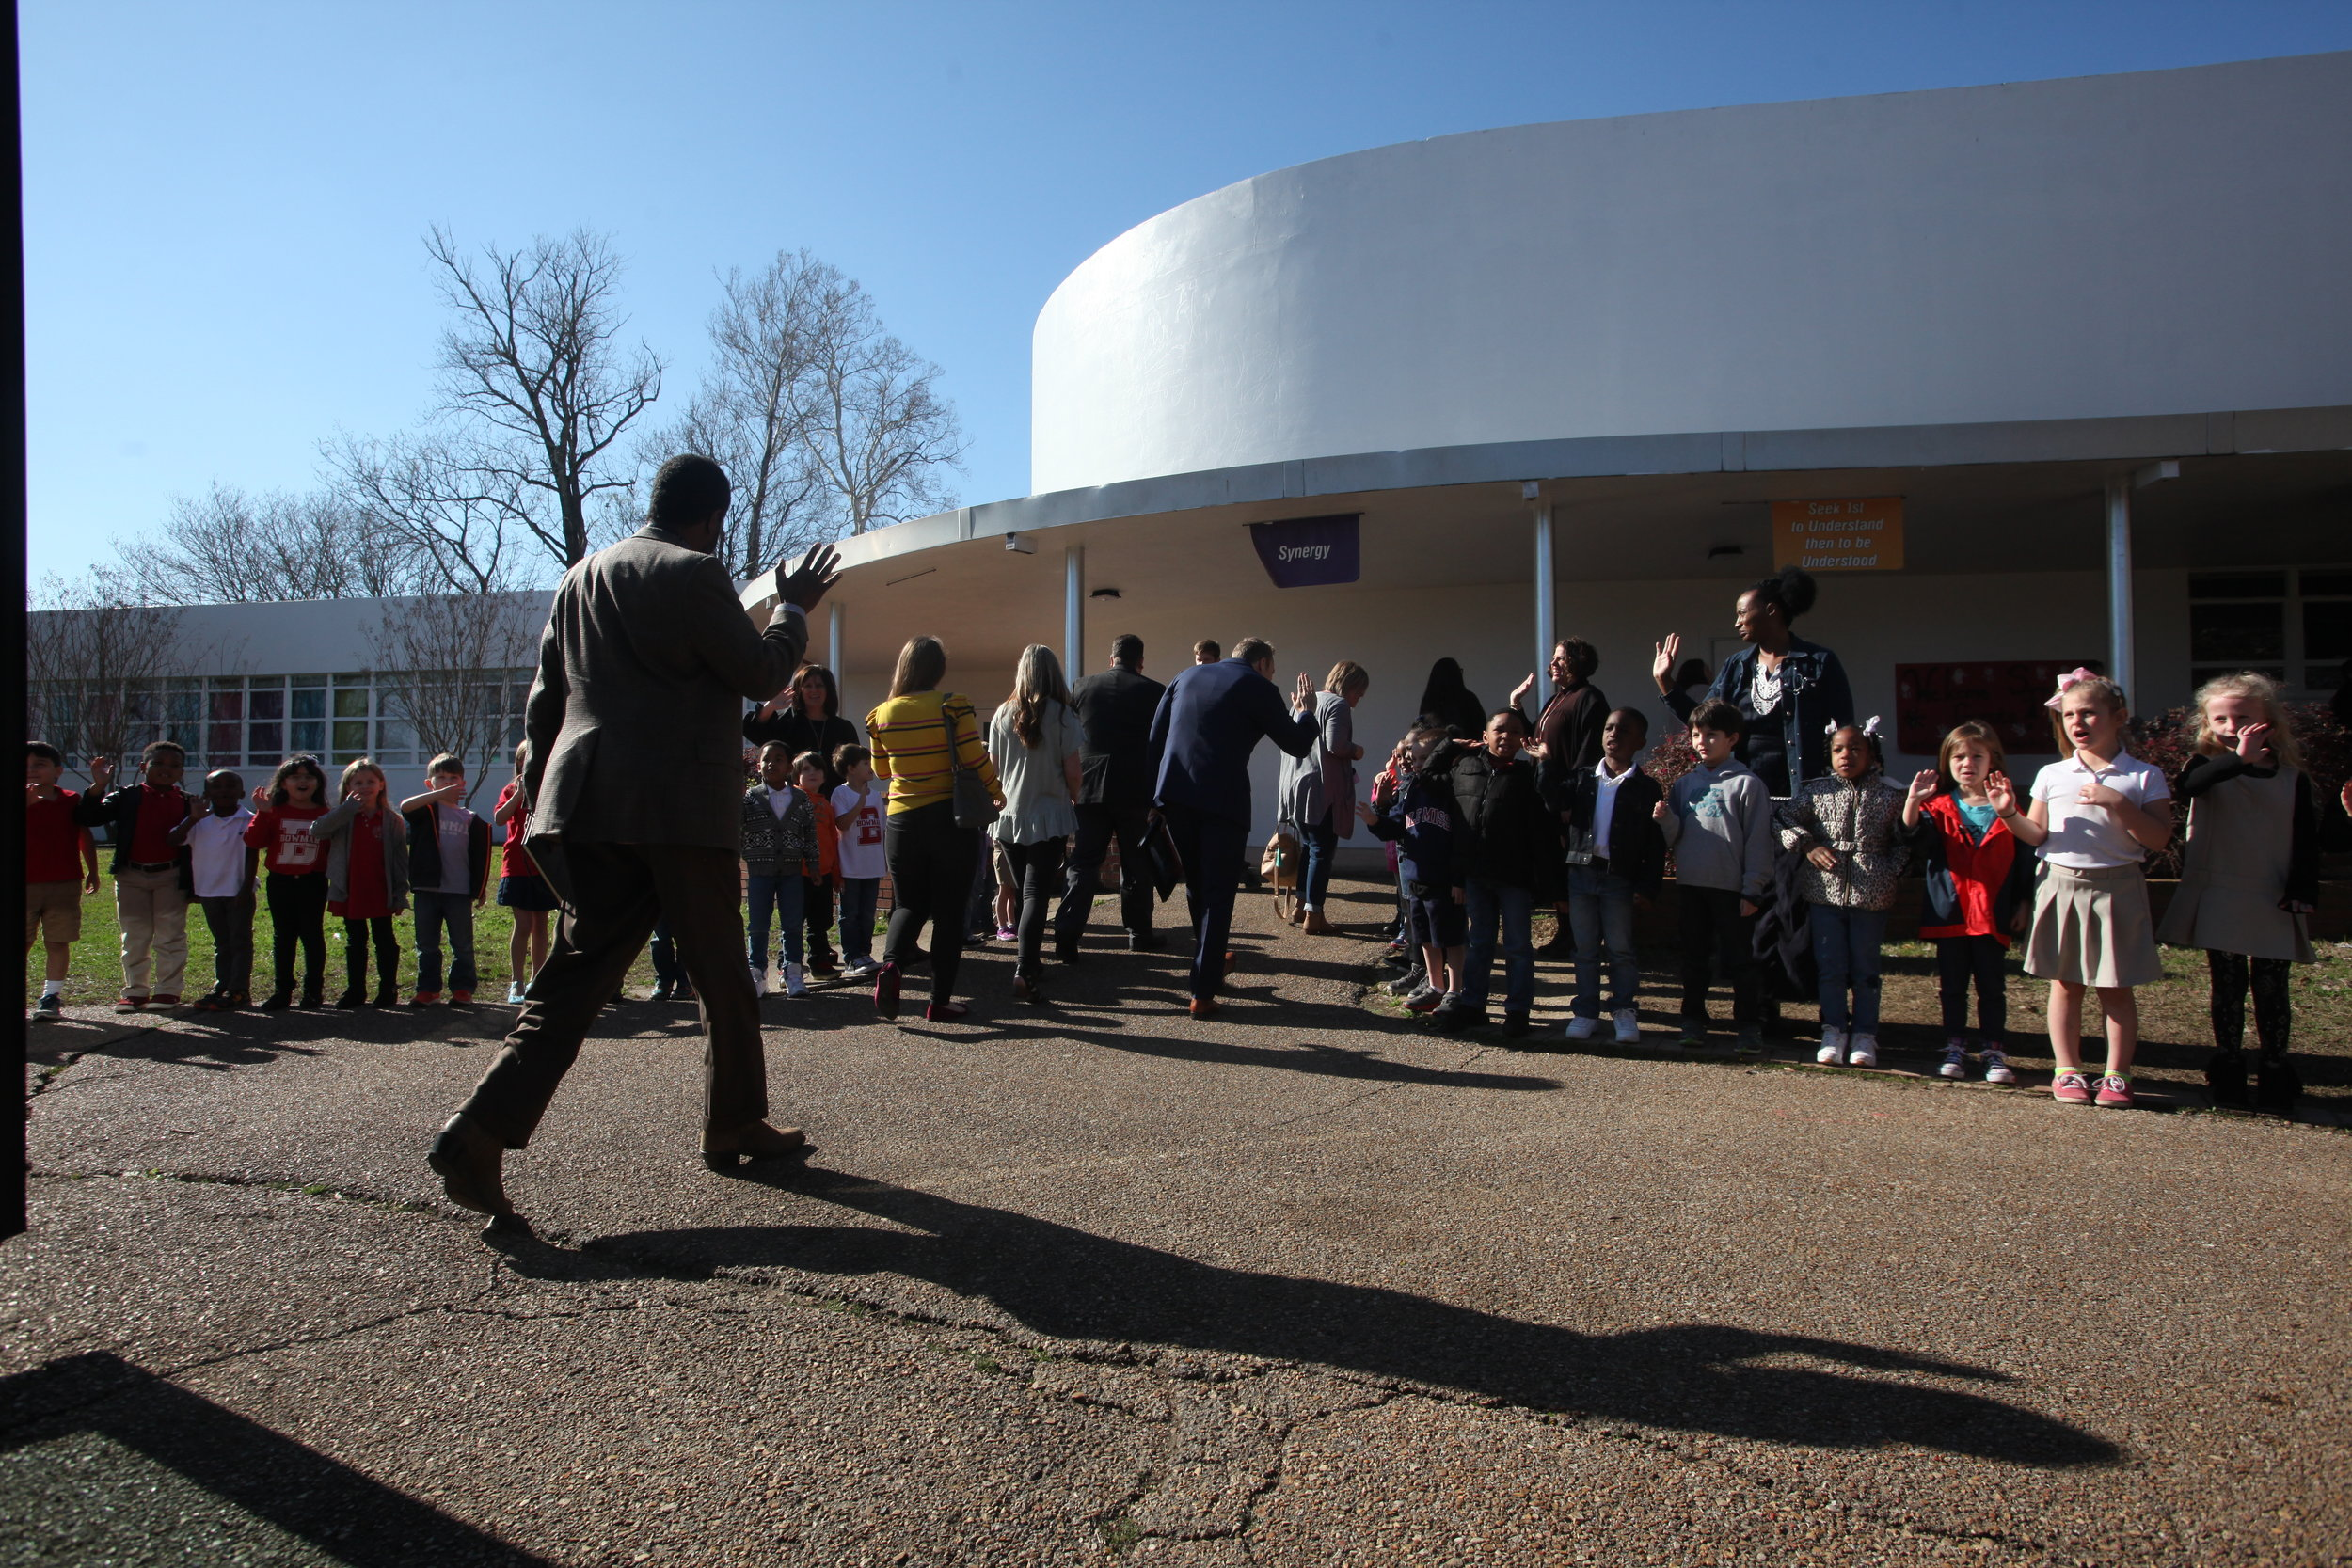 Bowmar Elementary students greet educators as they exit the bus for tours at Bowmar Elementary School as part of the Leader in Me Symposium Friday. (Courtland Wells/The Vicksburg Post)